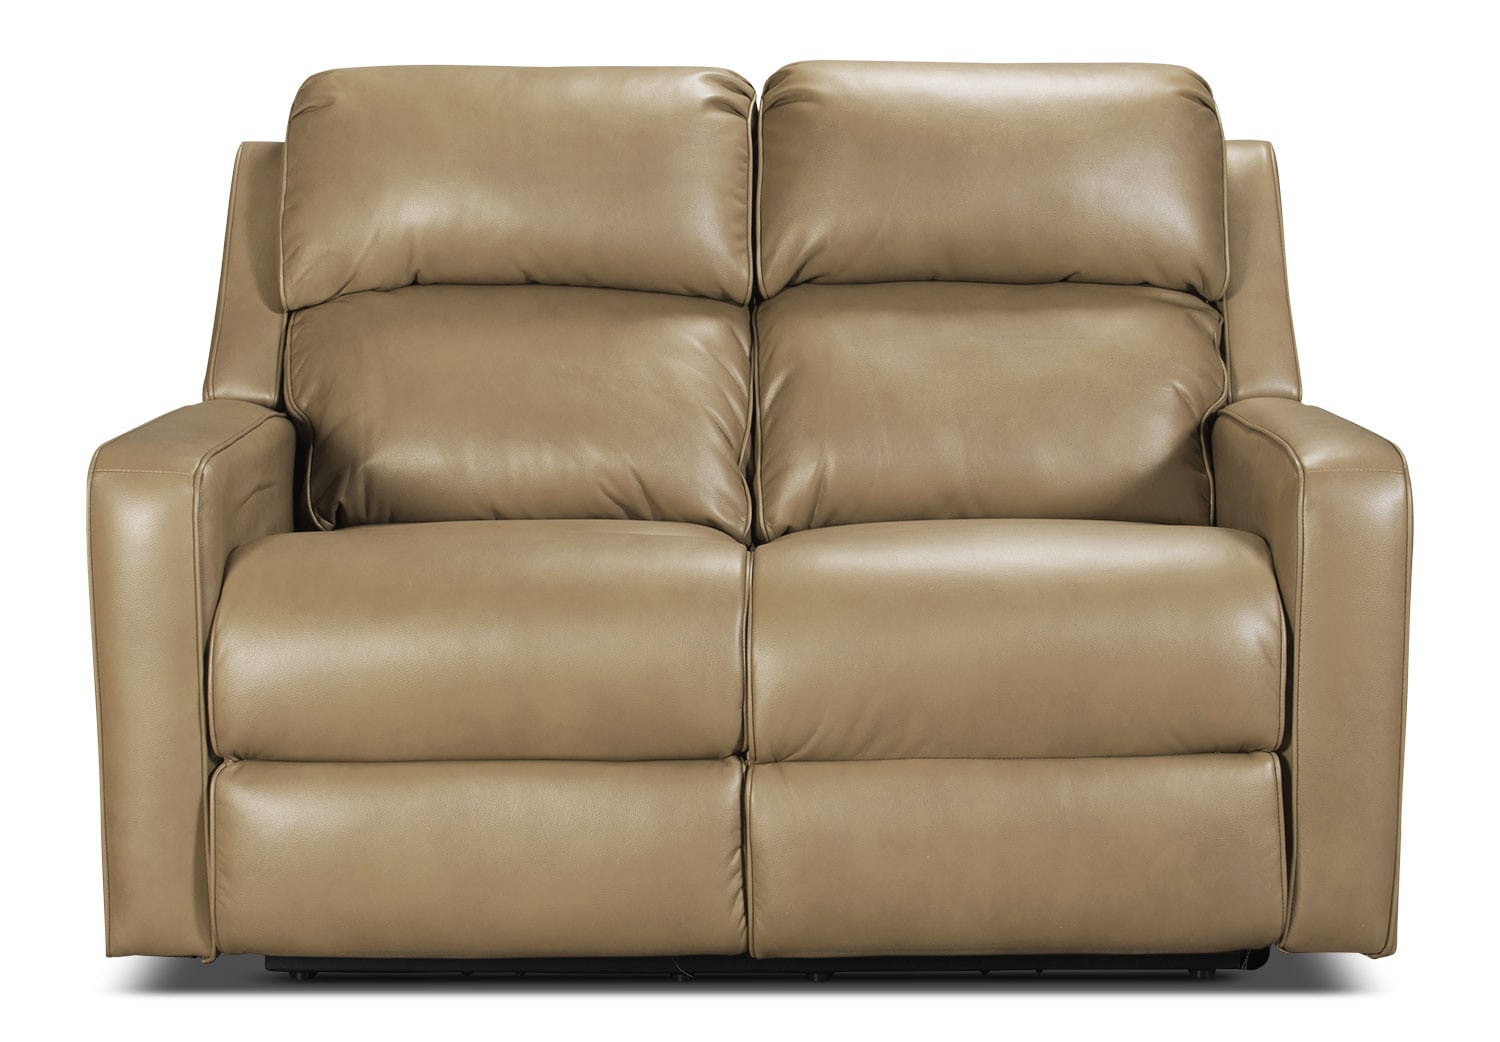 Escalade Power Reclining Loveseat - Sand